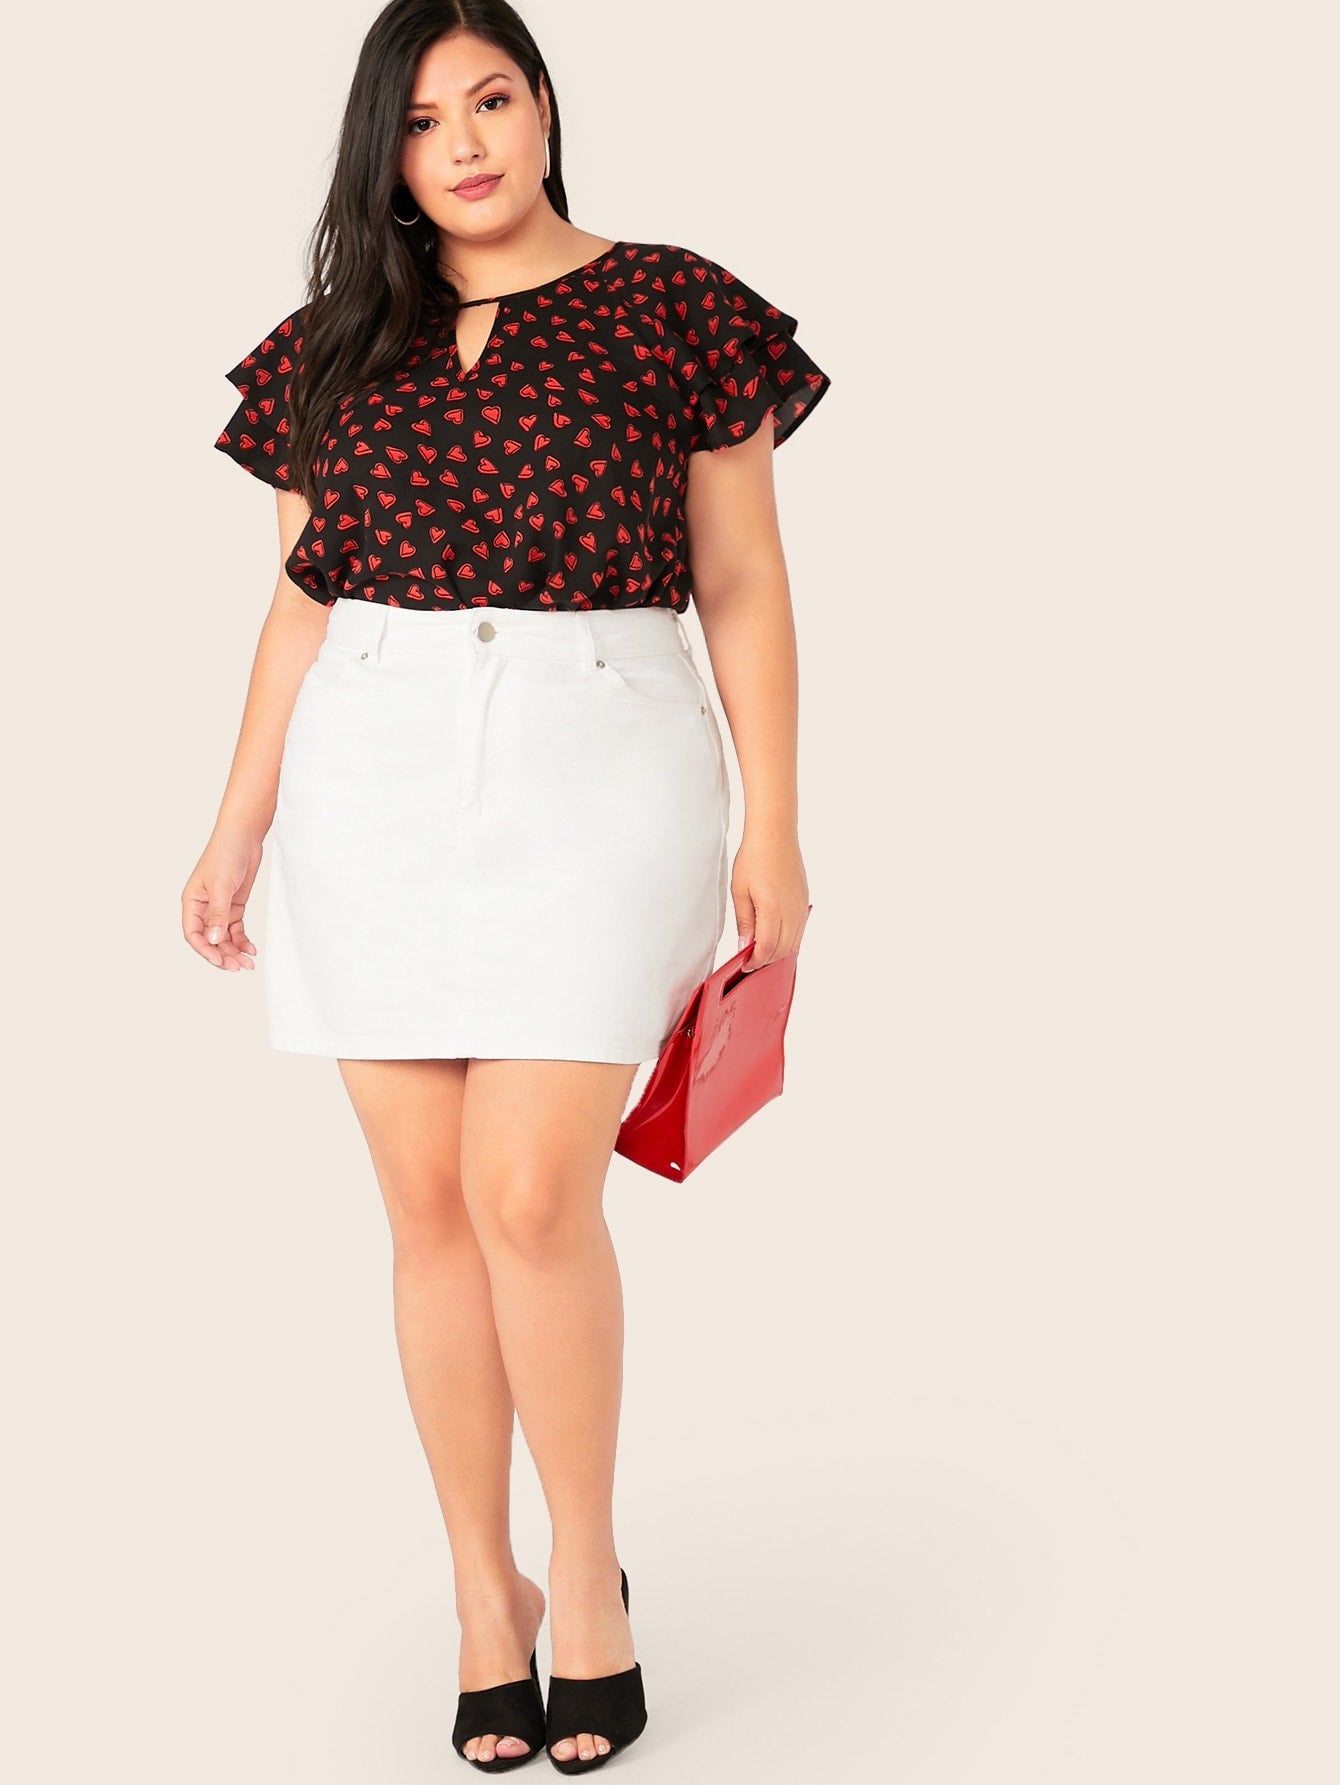 Plus Keyhole Neck Butterfly Sleeve Heart Summer Top - BrandsGuru